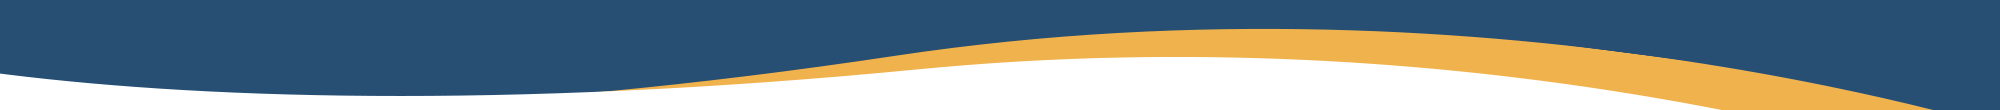 Hedges_Default_Web_Banner_Blue_Yellow.png